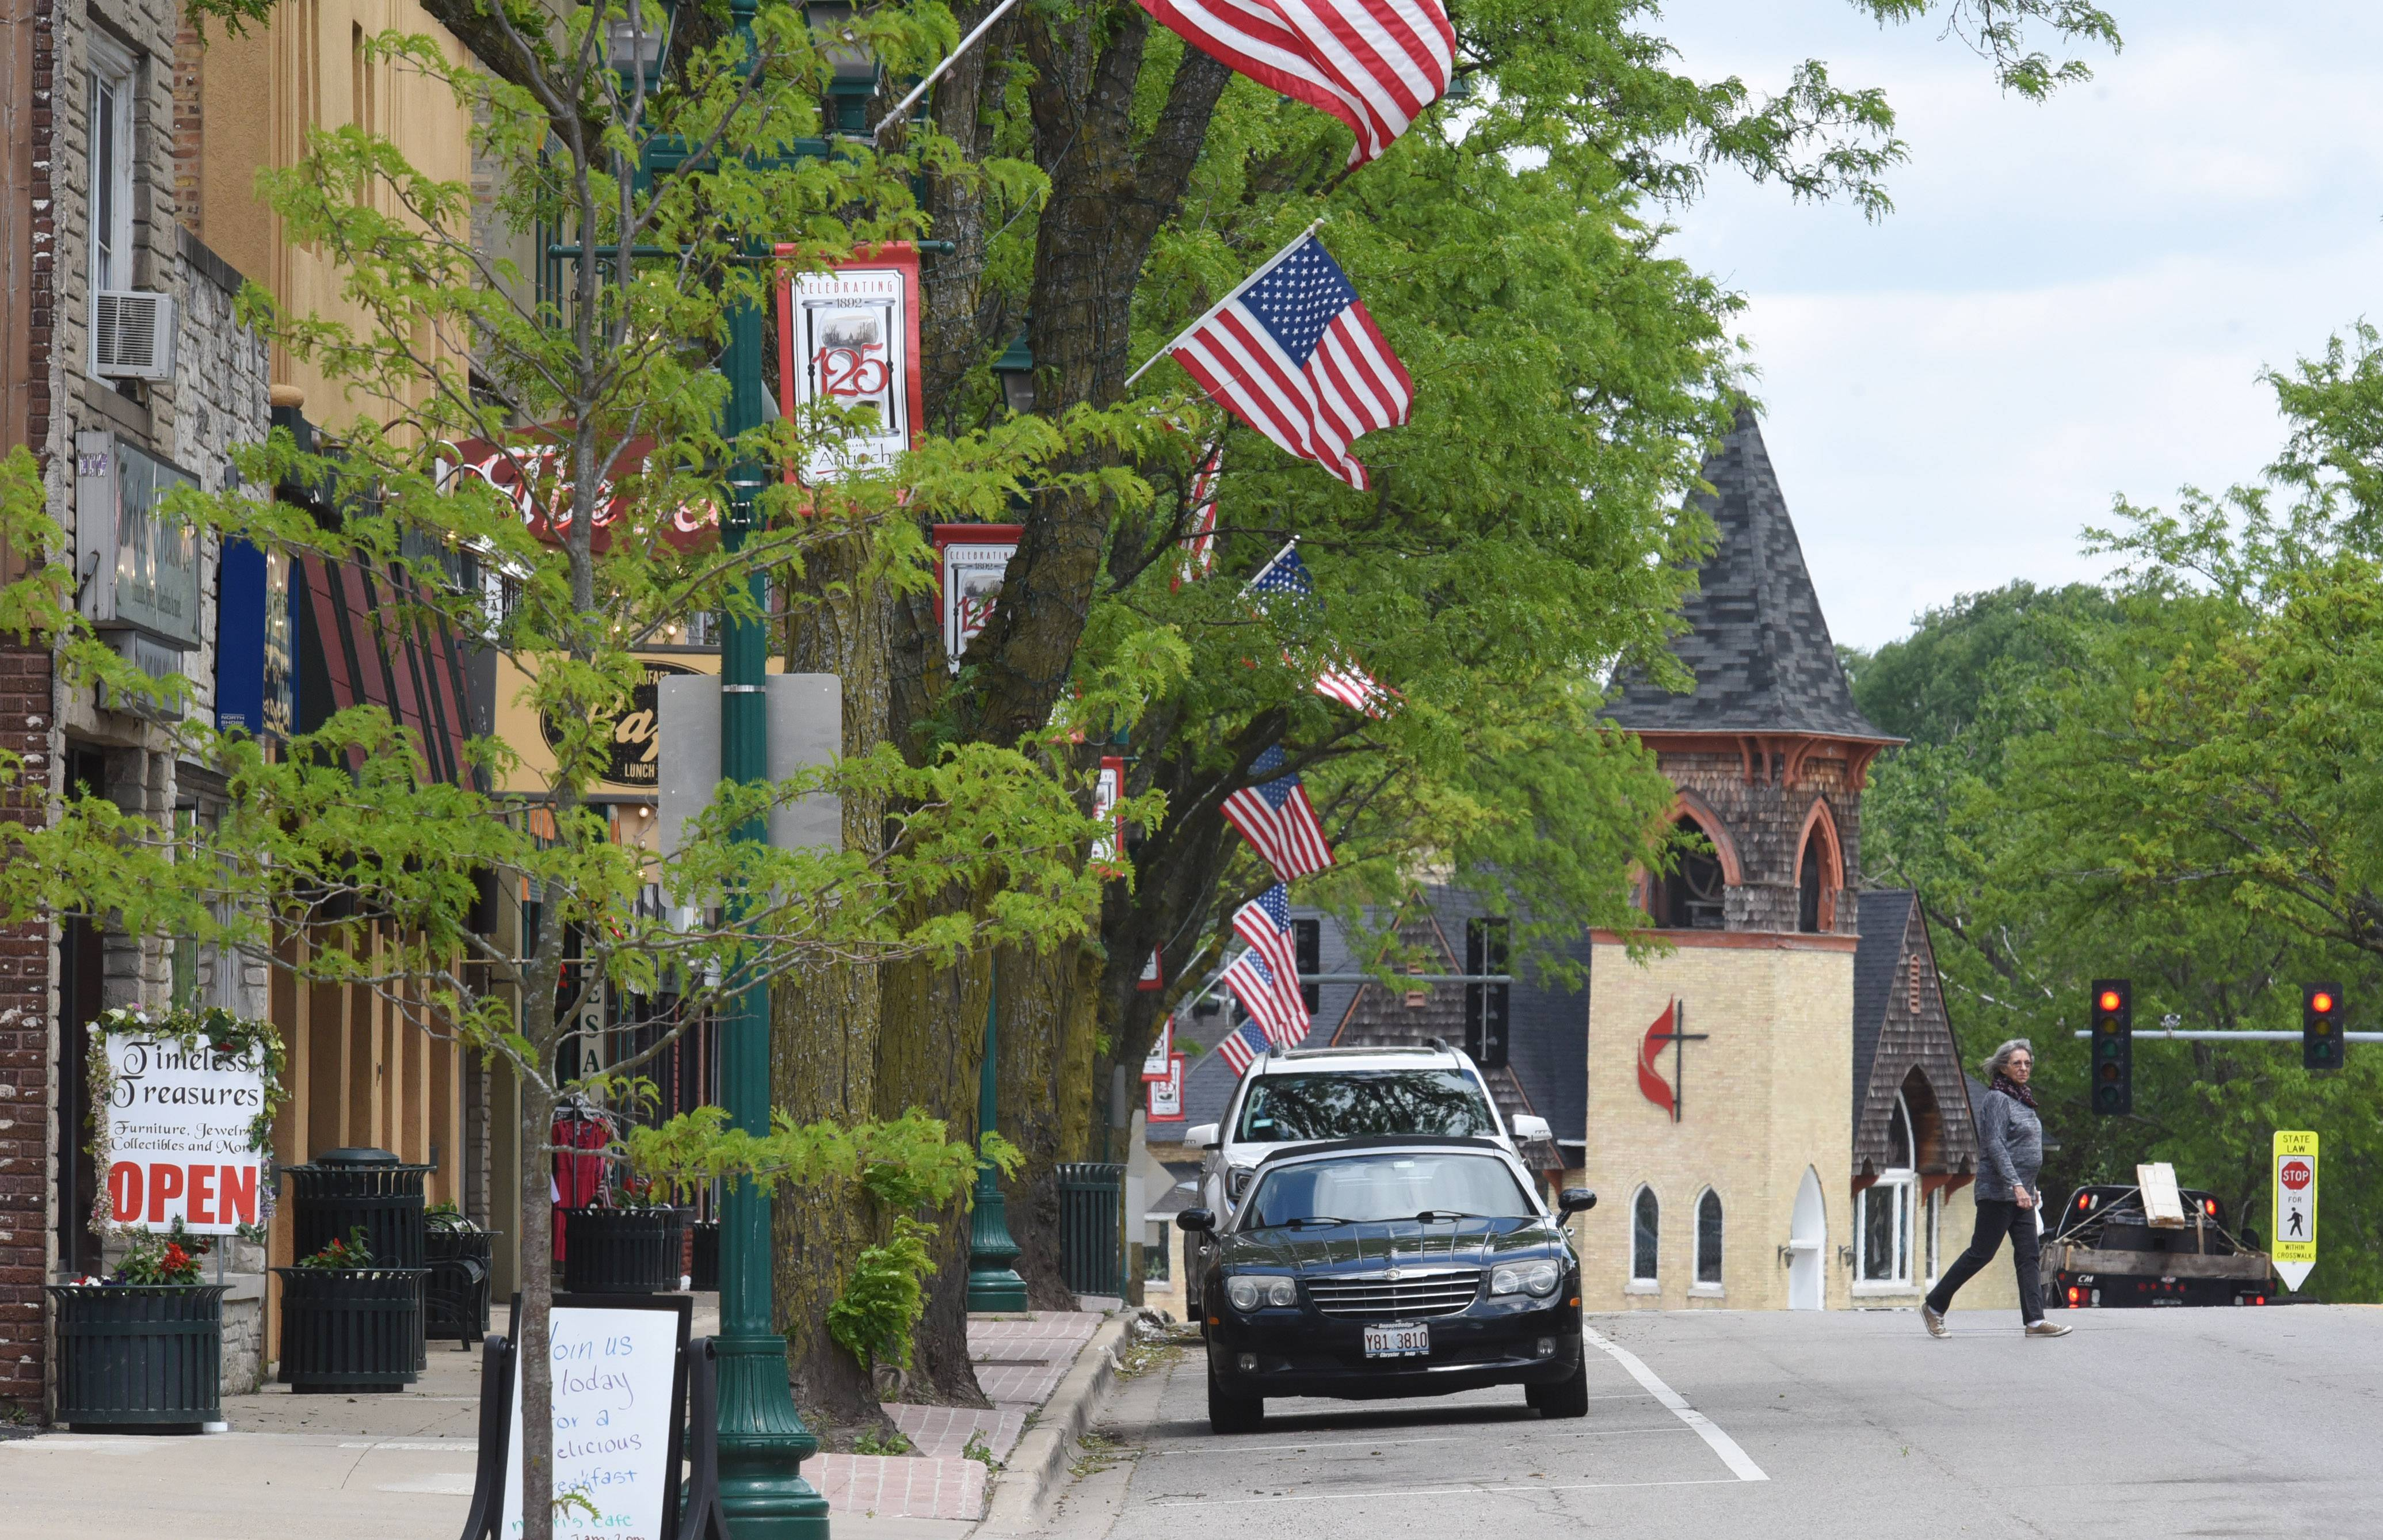 A survey of why people visit Antioch's downtown and what they would like to see there is underway. The results will help form the basis of a strategic plan for the village's downtown.